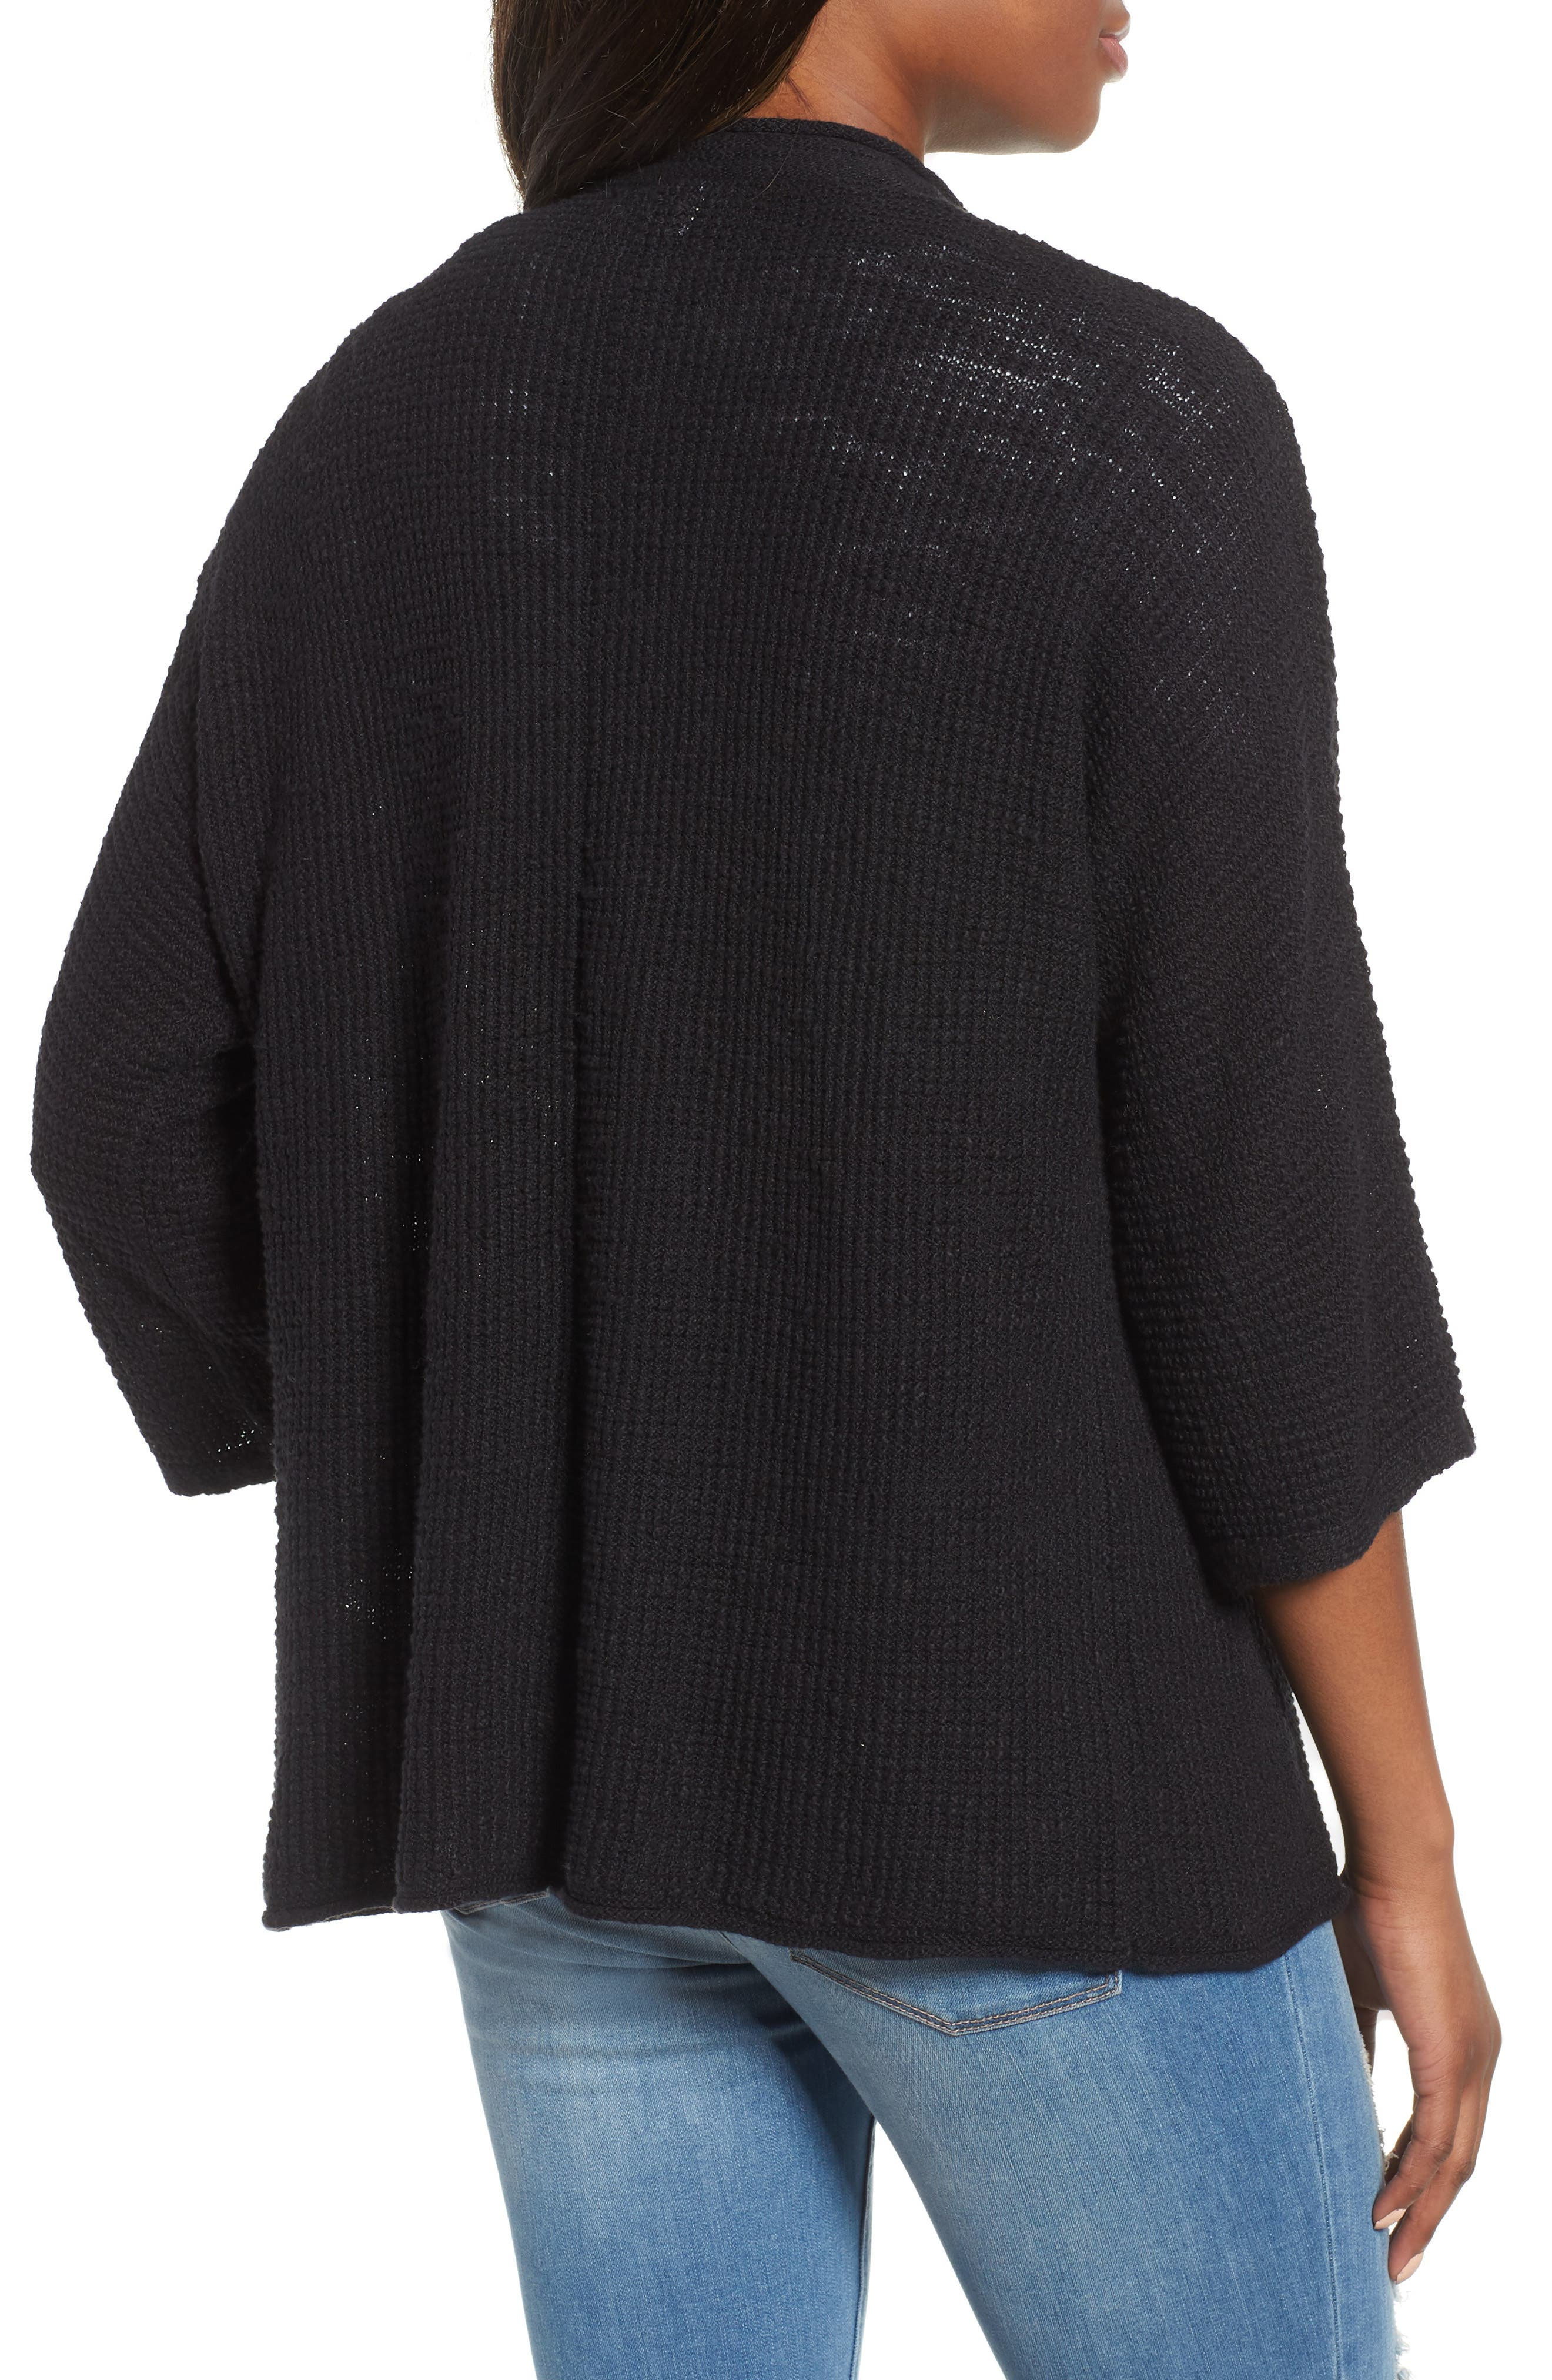 a2328a49de1adc fringe sweater | Nordstrom